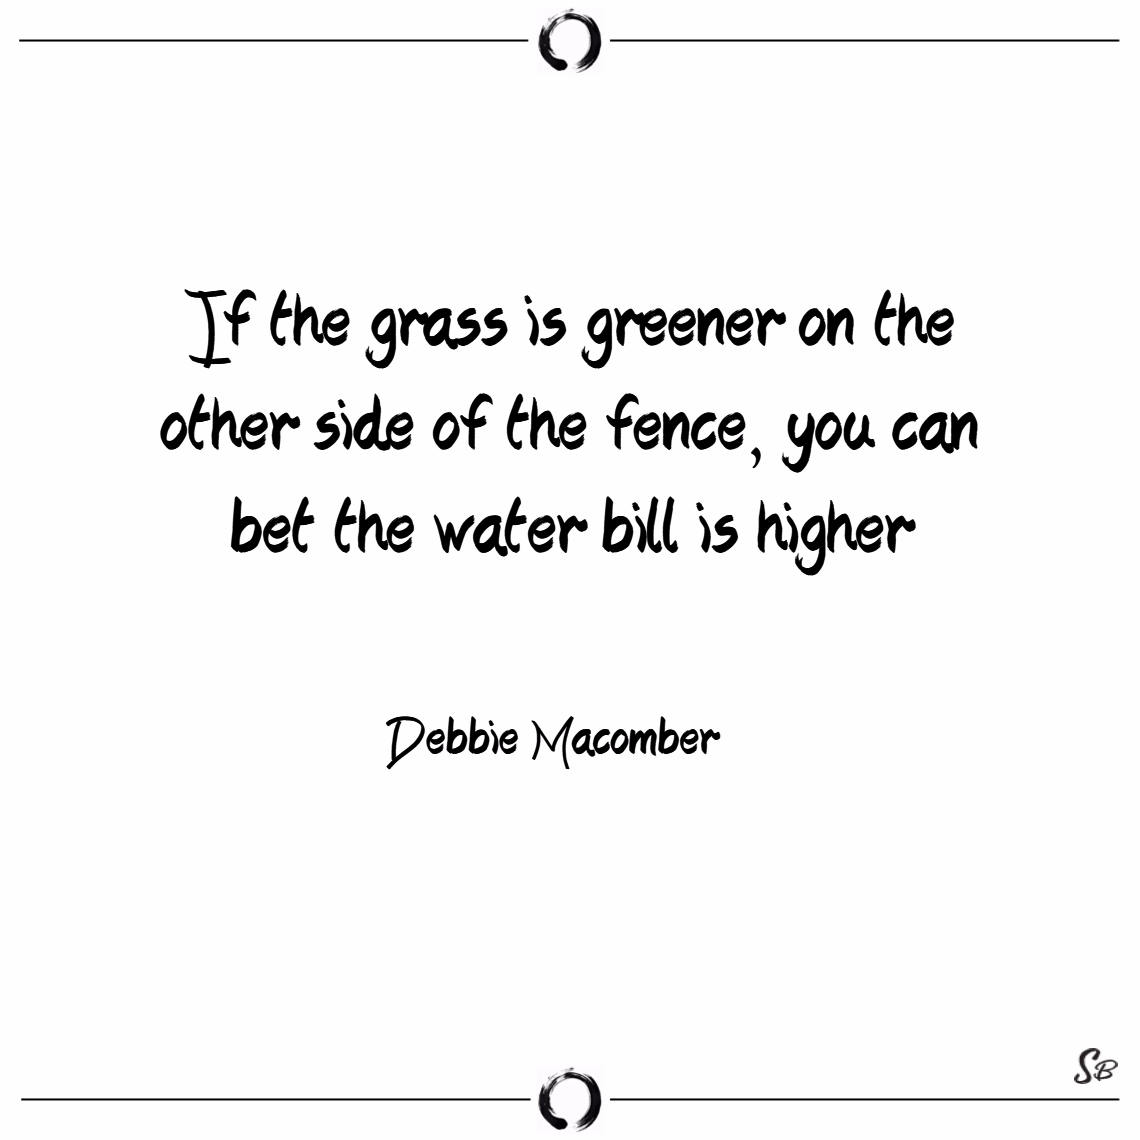 If the grass is greener on the other side of the fence, you can bet the water bill is higher. – debbie macomber